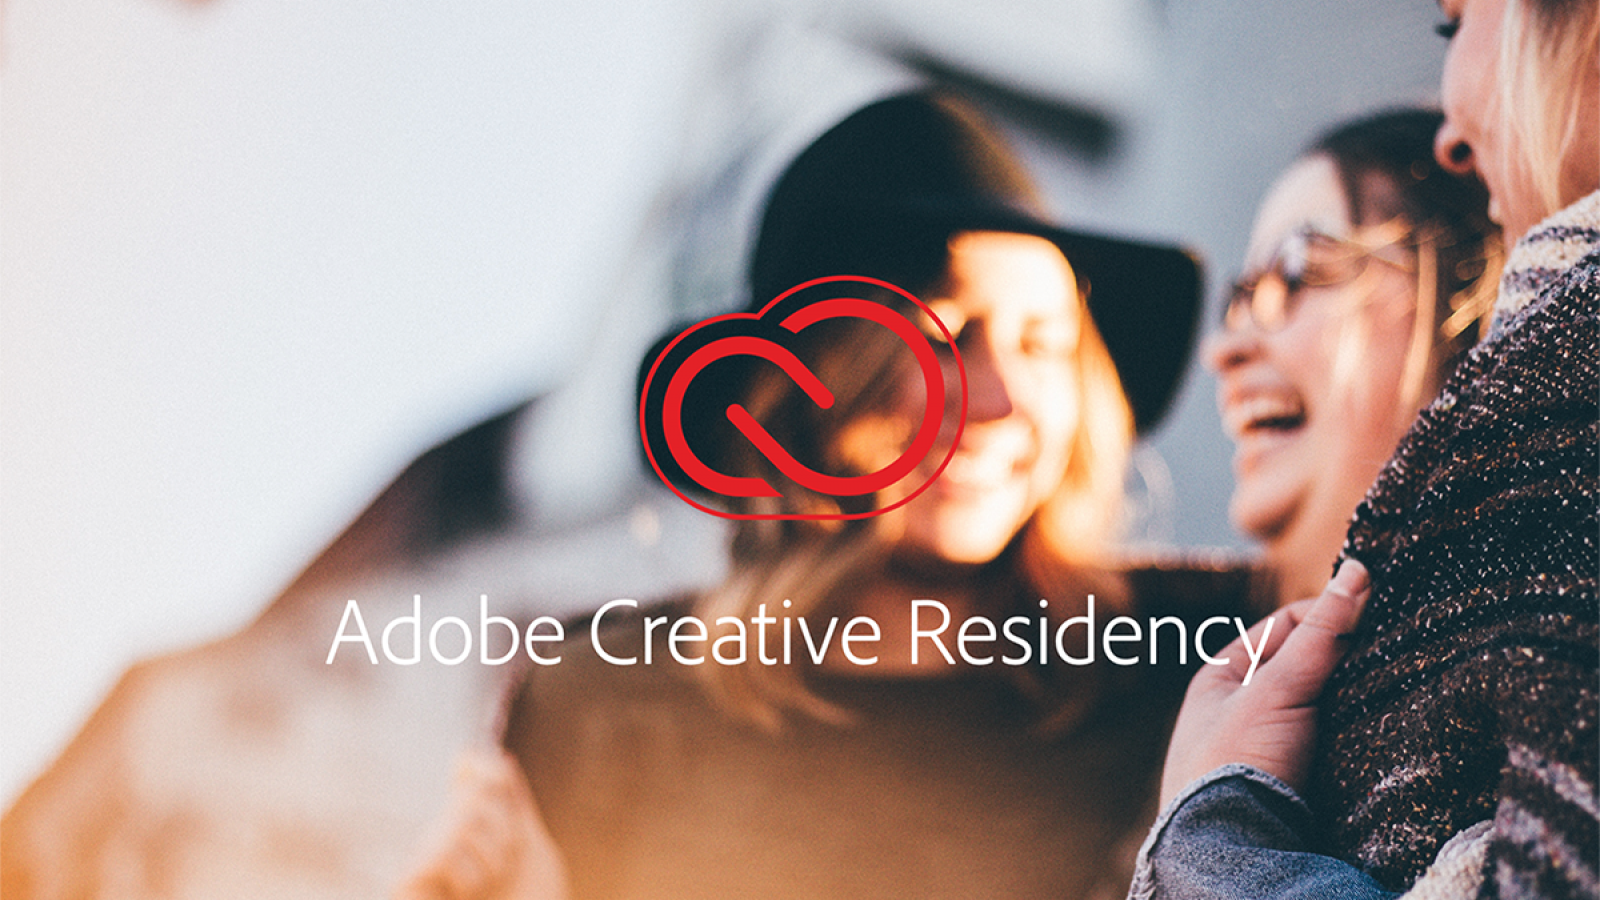 Adobe Creative Residency 2019 - Calling all creatives!